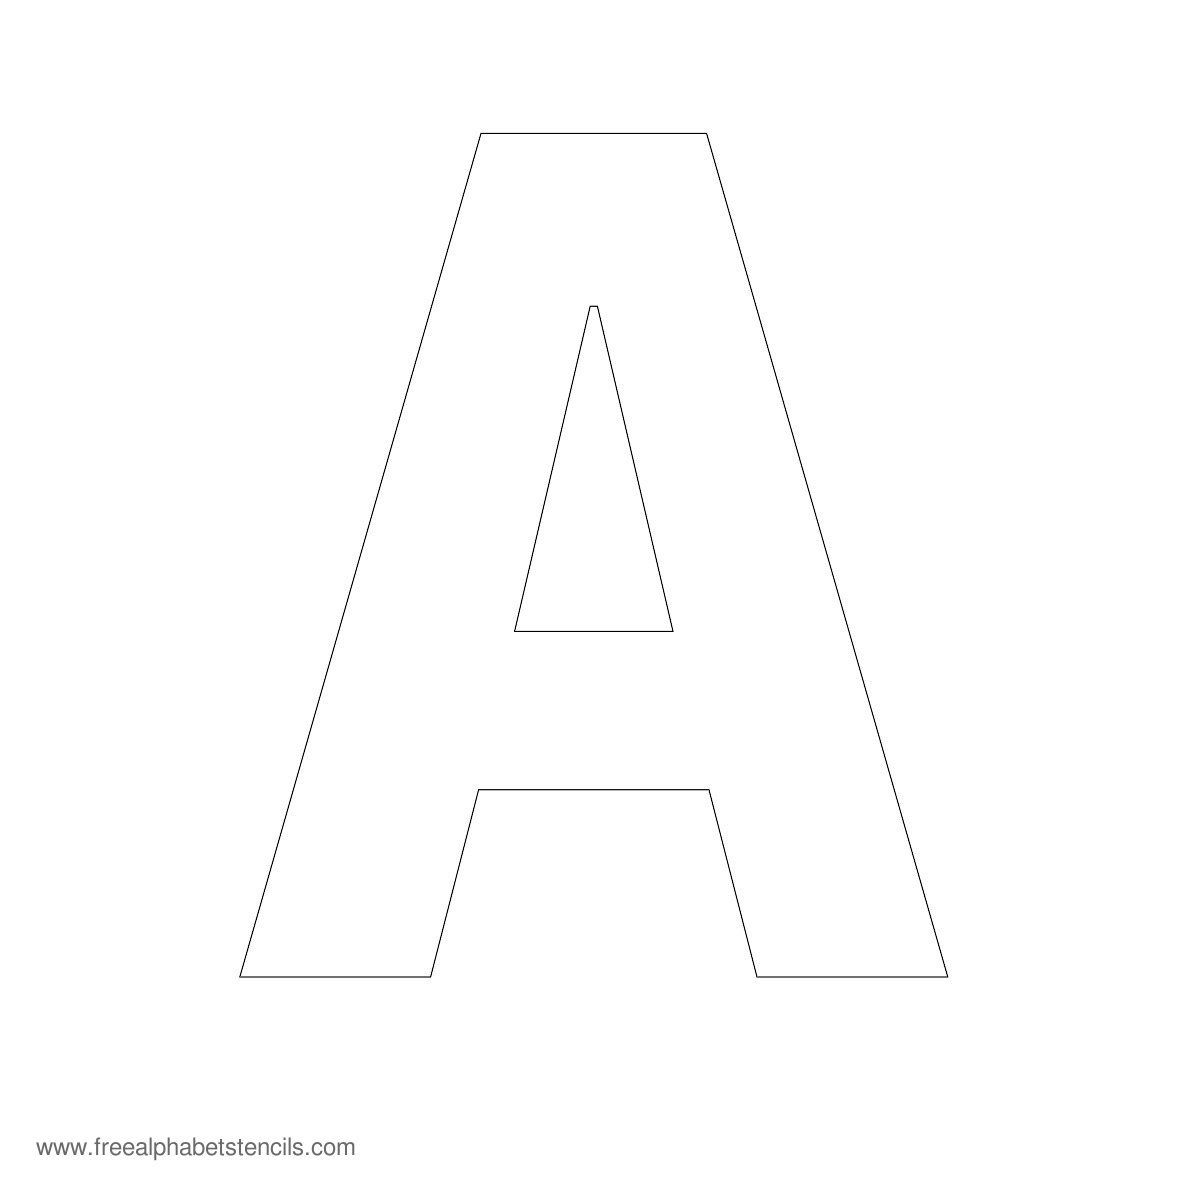 graphic about Printable Big Alphabet Letters identify Totally free Printable Extravagant Letters Cost-free printable Substantial alphabet